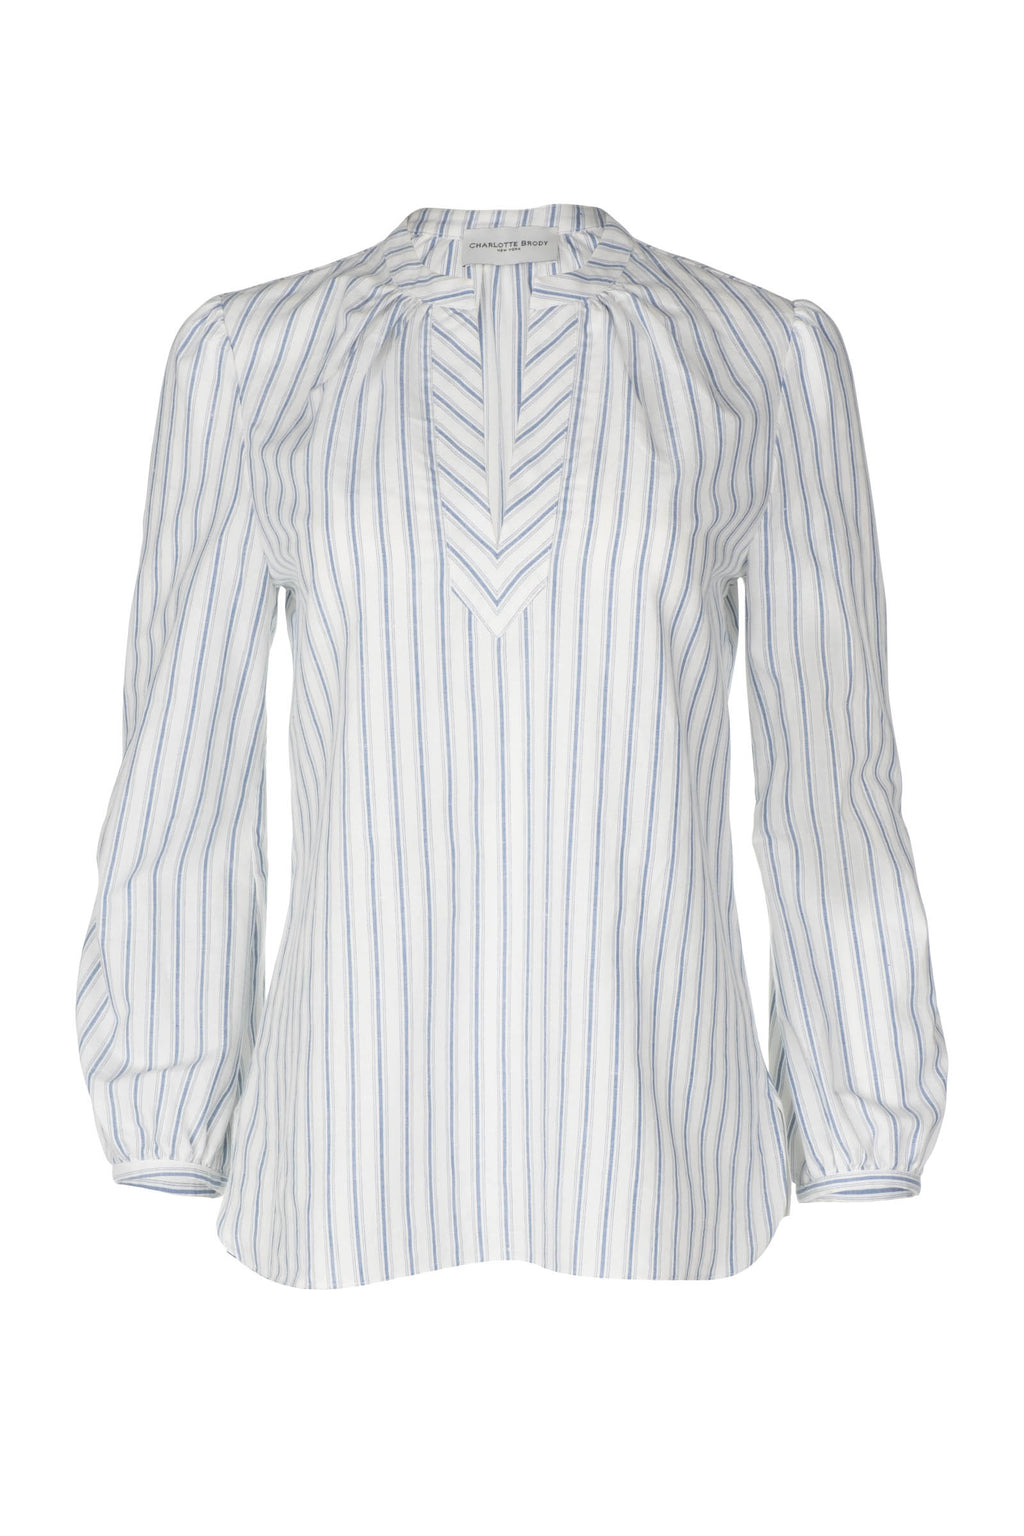 Tunic - Blue and White Stripe